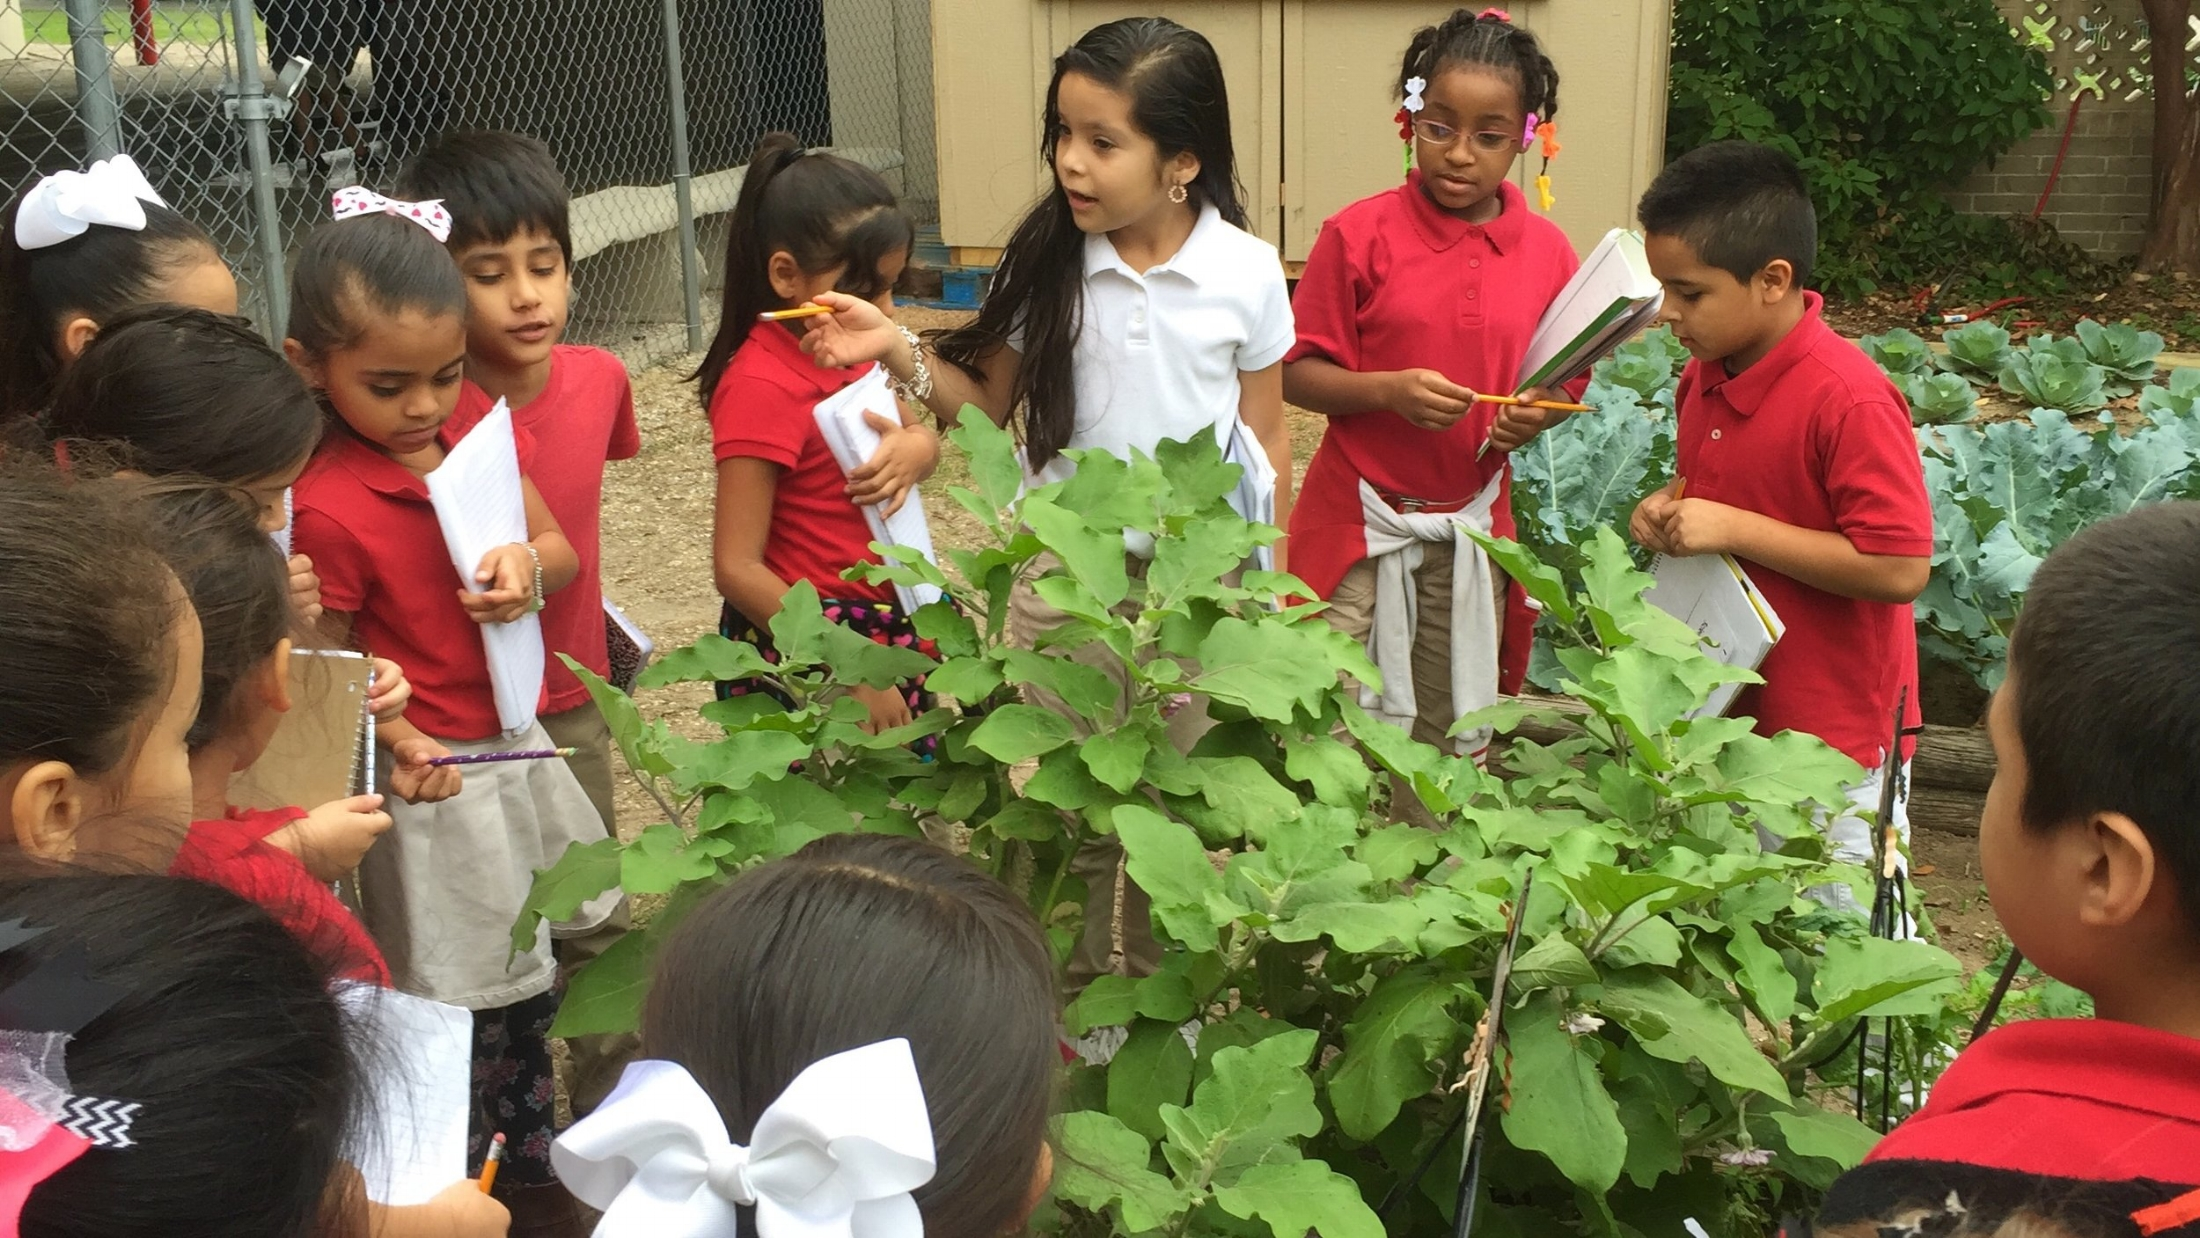 Garden-Based Learning Program @ Bowden Elementary School